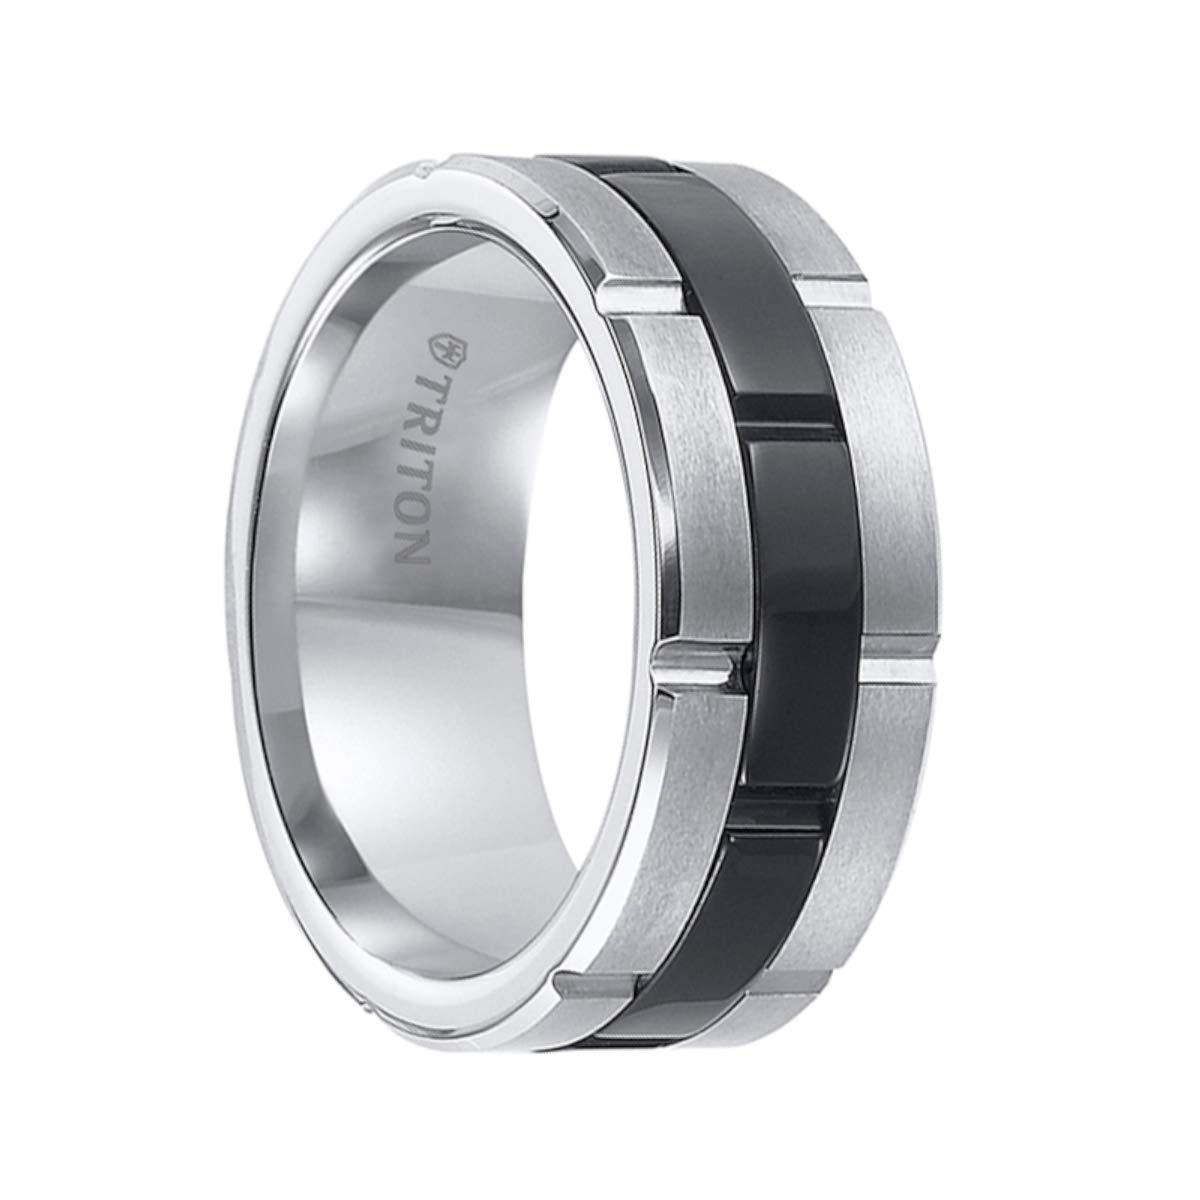 Triton Ring Black and White Tungsten Carbide Comfort Fit Band with Brick Engraving